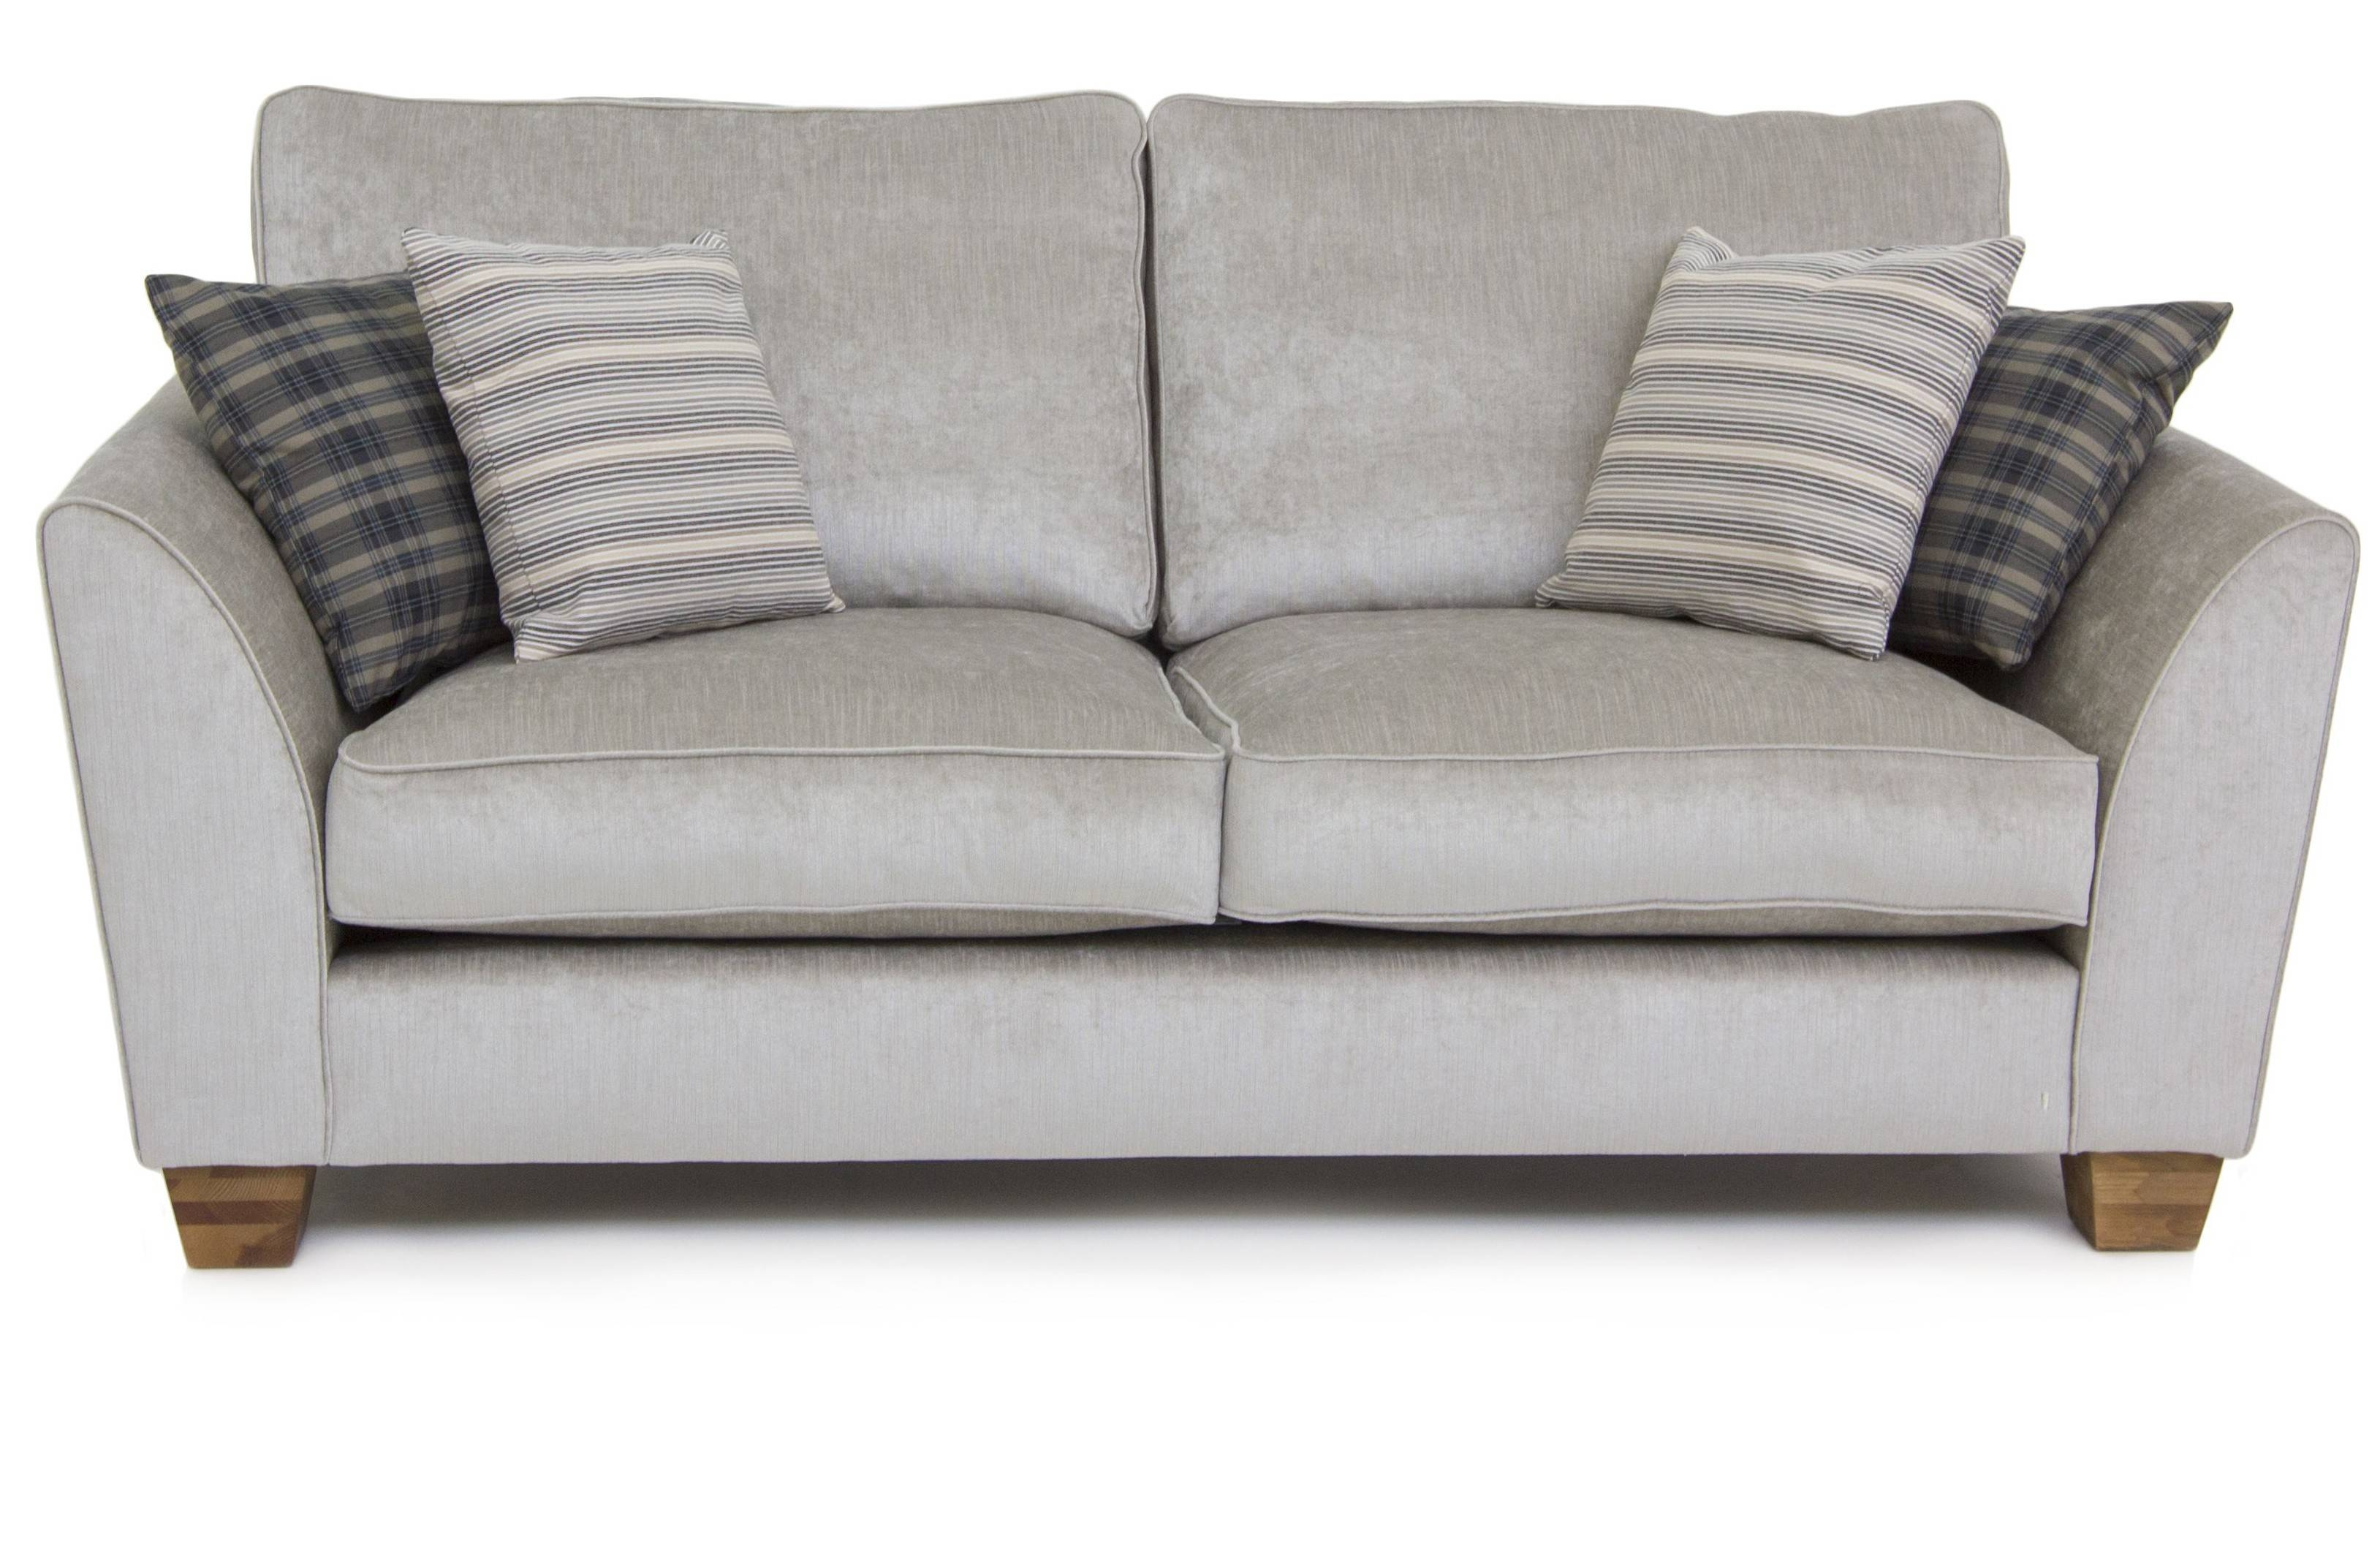 The Best Small 2 Seater Sofas